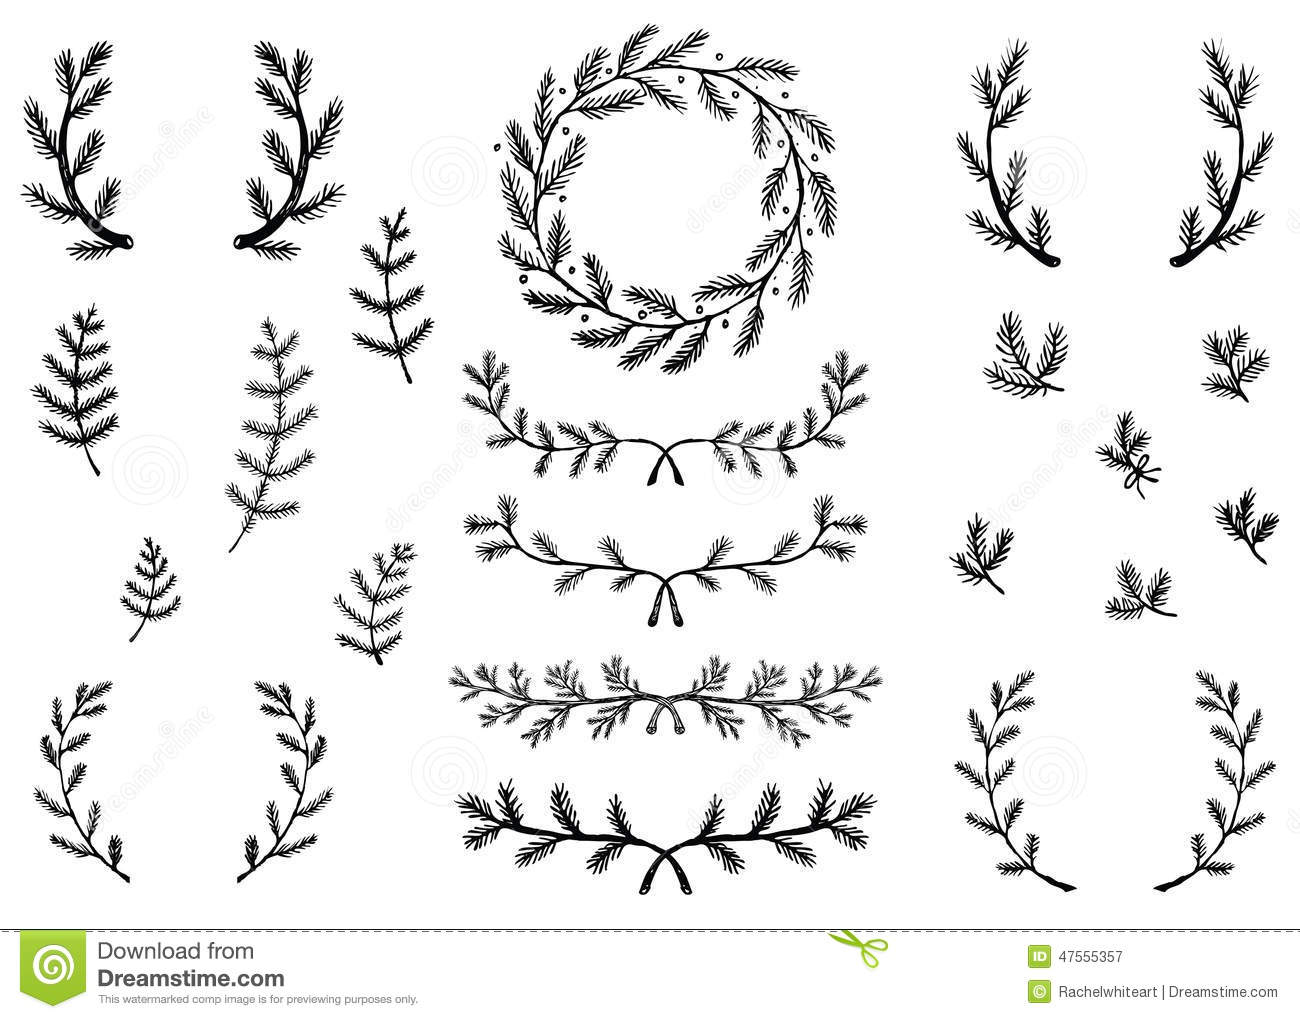 ... drawn pine branch illustrations of laurels, accents, and a wreath